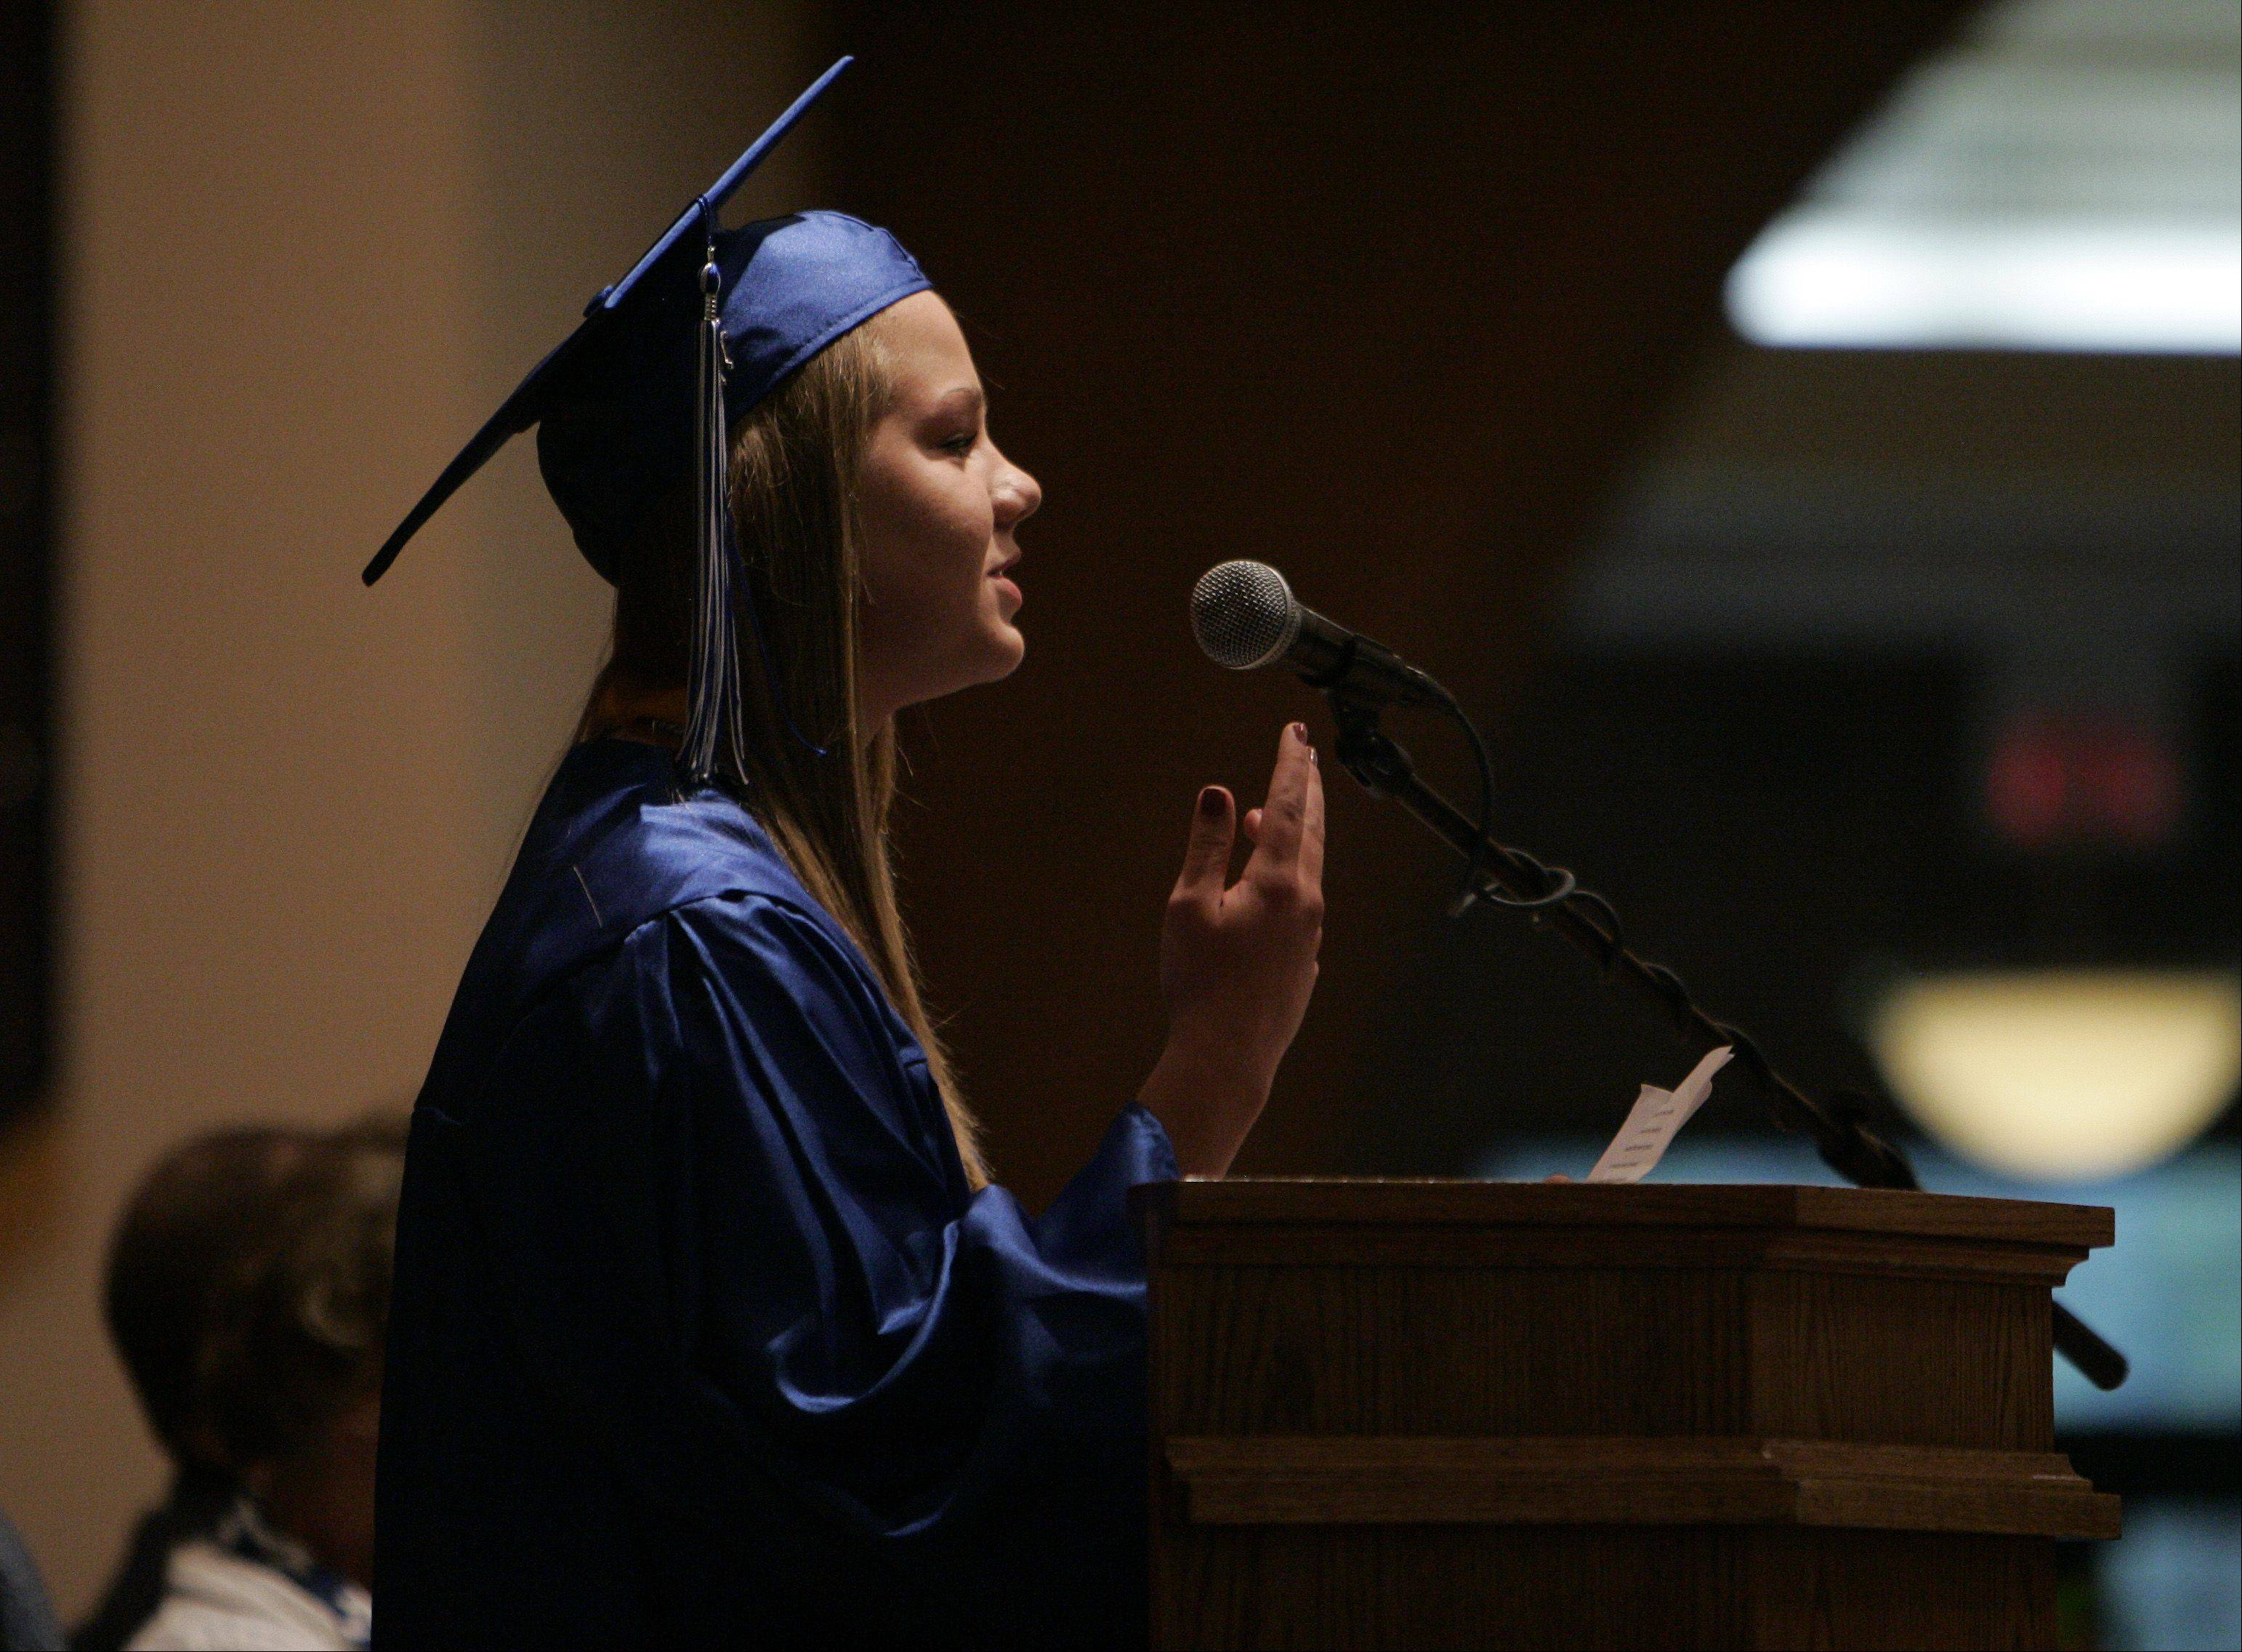 Salutatorian Whitney Vanden Bos breaks into a rap during her speech at the Westminster Christian High School graduation ceremony.